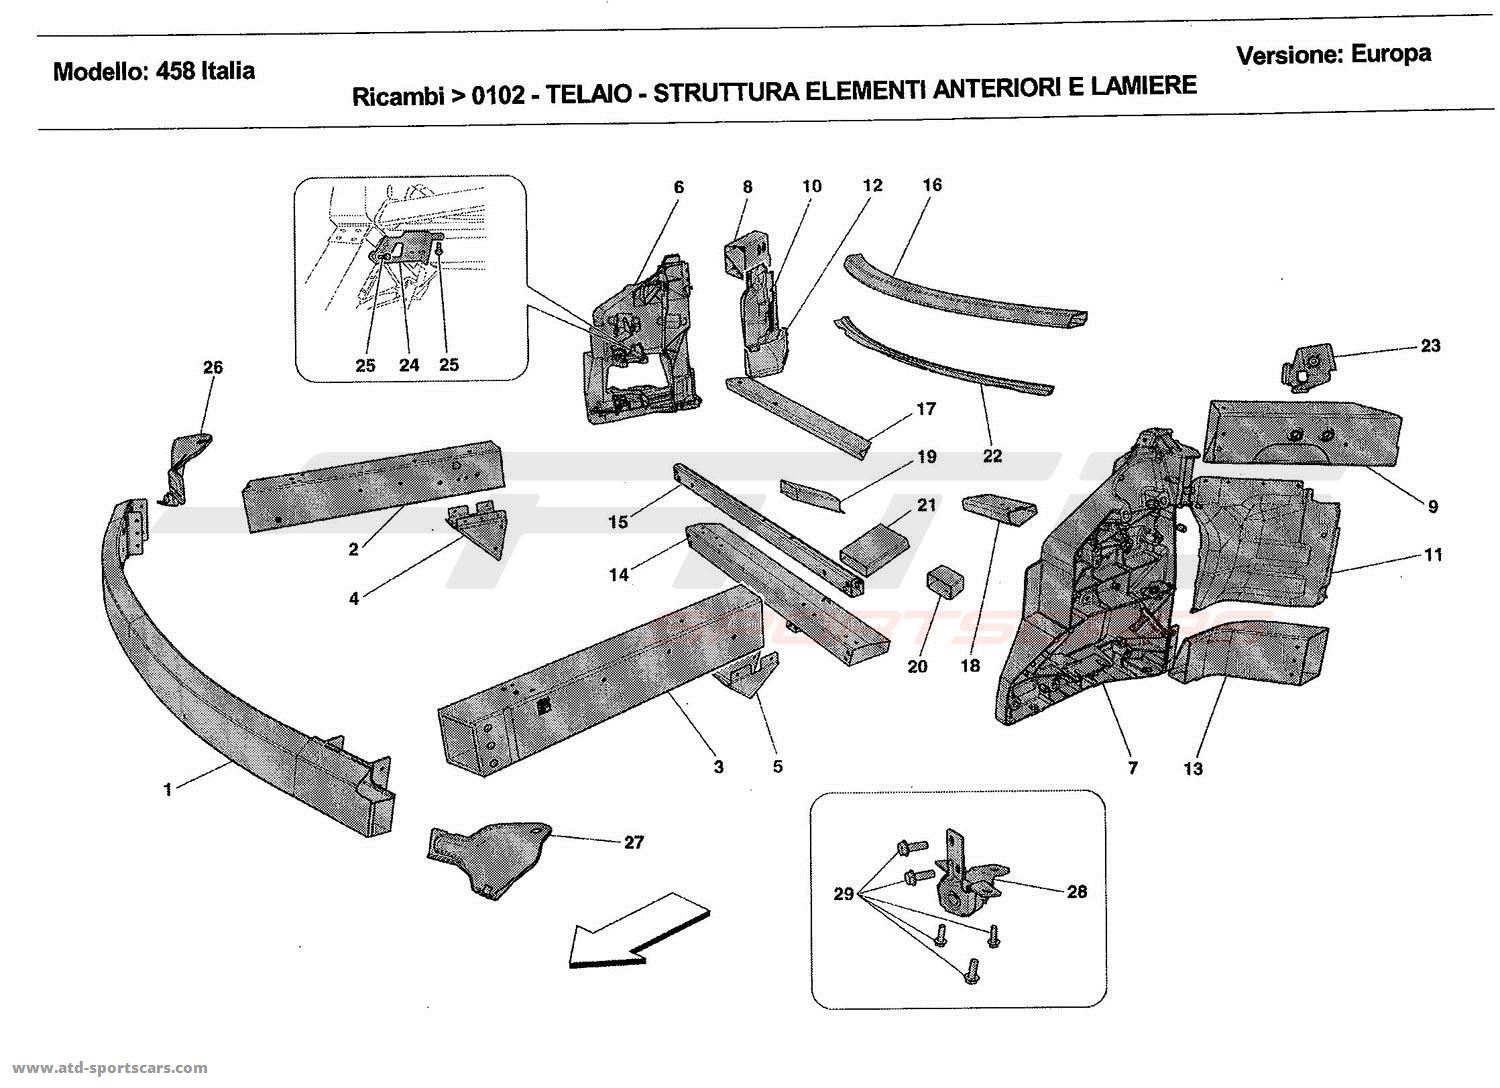 CHASSIS - STRUCTURE, FRONT ELEMENTS AND PANELS